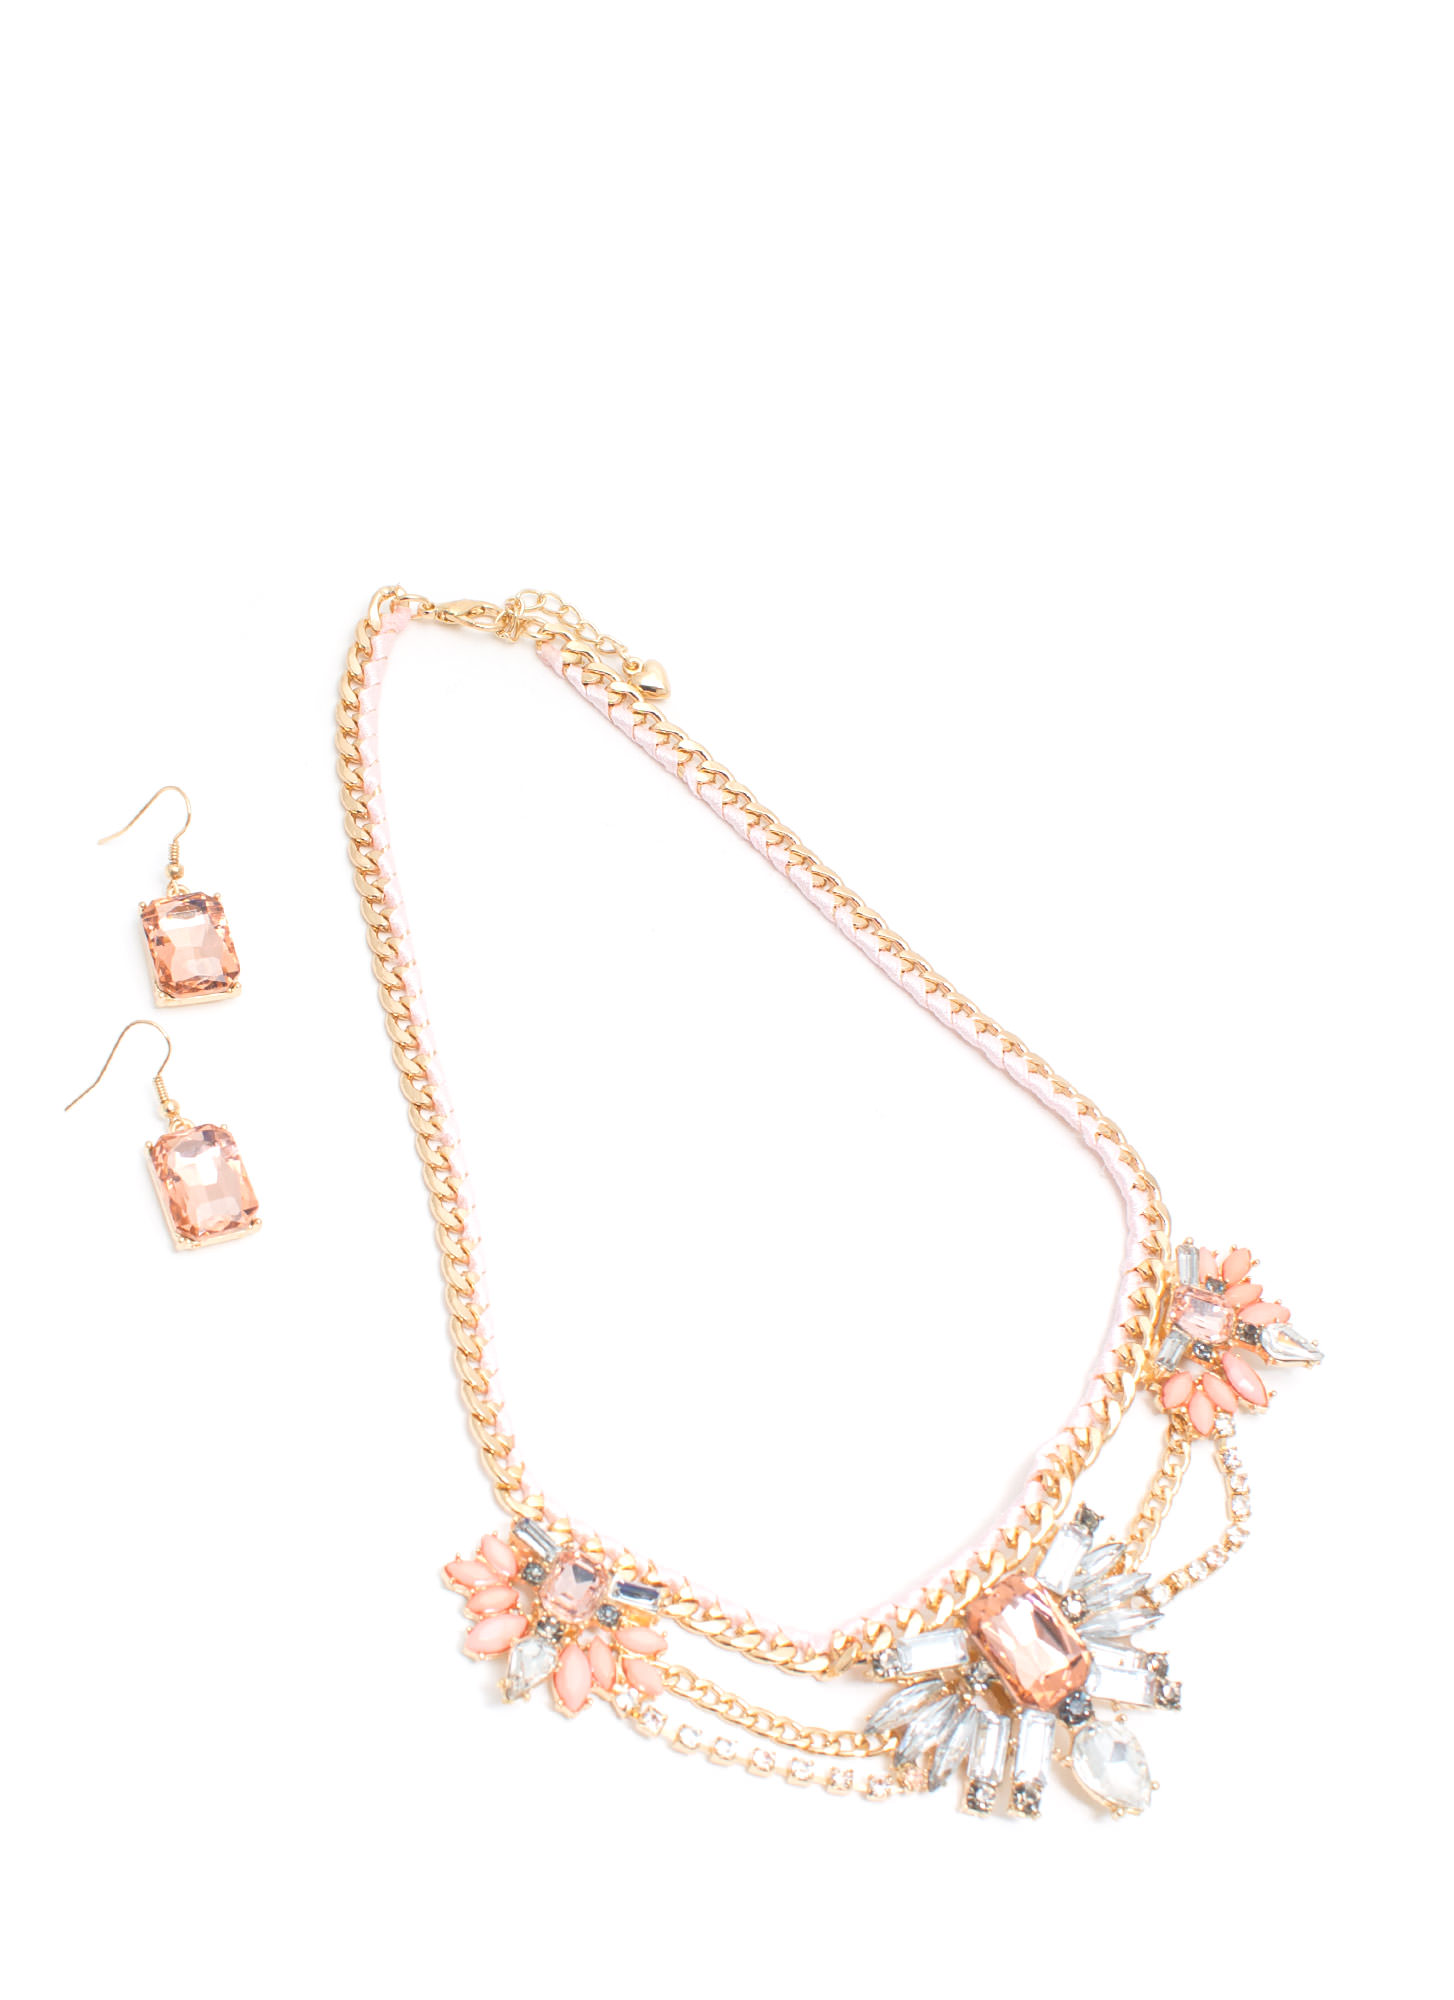 Garden Glamour Faux Jewel Necklace Set PINKGOLD